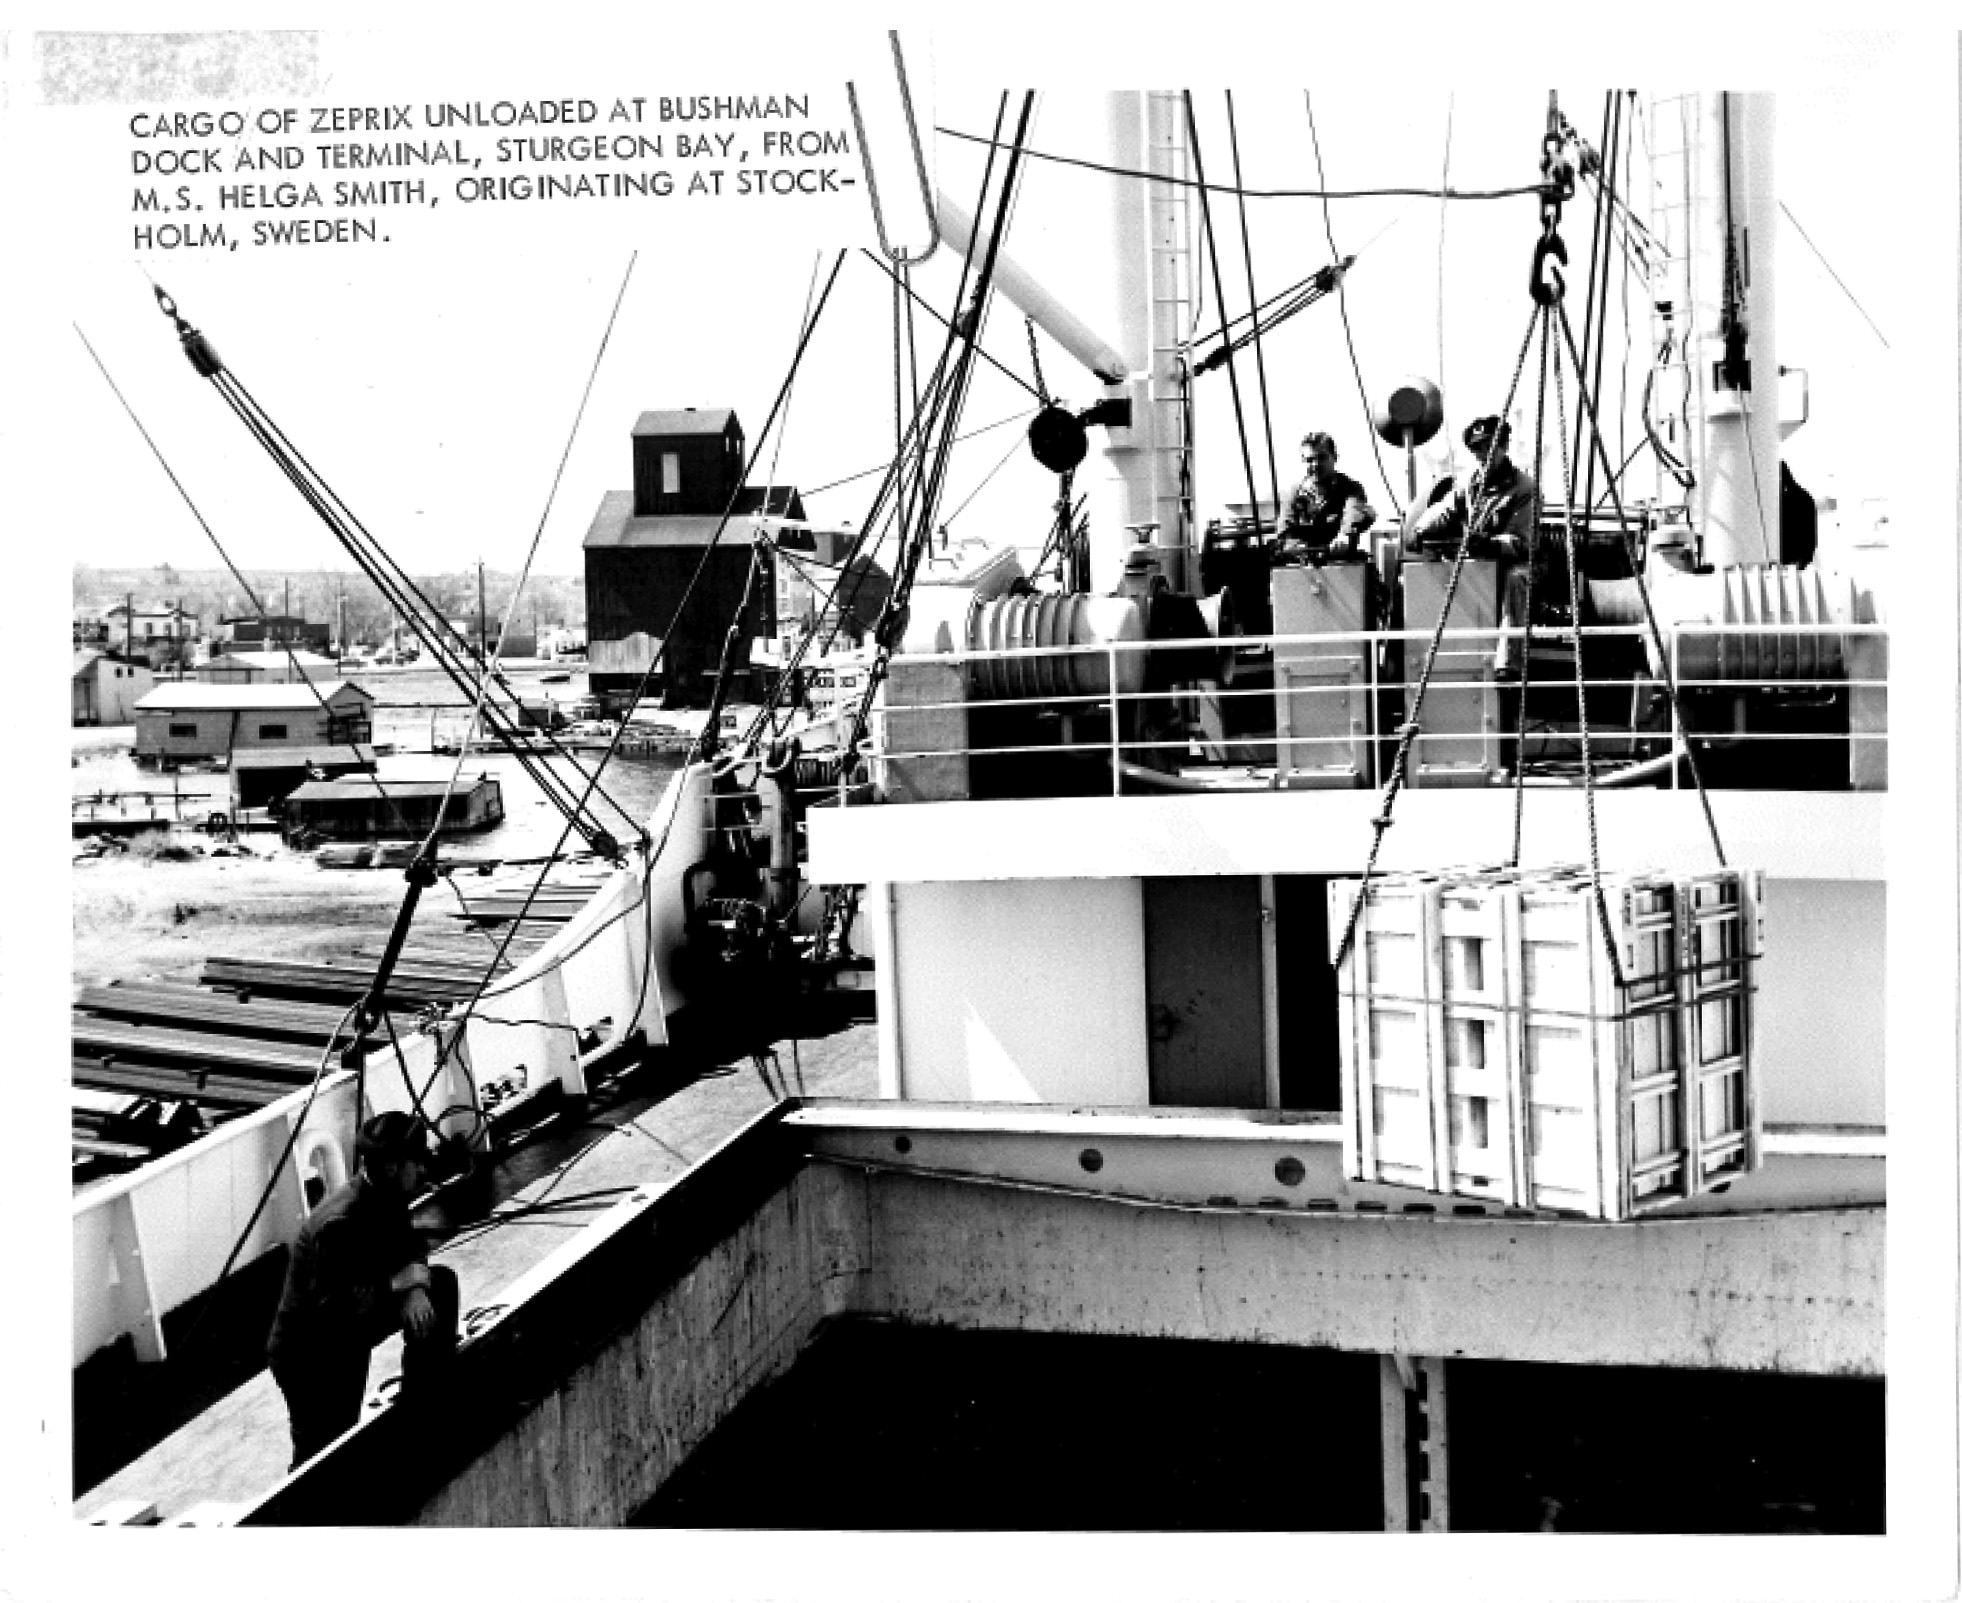 This photograph shows a ship unloading at the Bushman Dock (the next dock over from Teweles & Brandeis' Sawyer Dock). The Teweles & Brandeis elevator is visible in the background. In fact the Lyons Bros. elevator is also shown behind and to right of the Teweles & Brandeis elevator. Estimated circa 1950s.